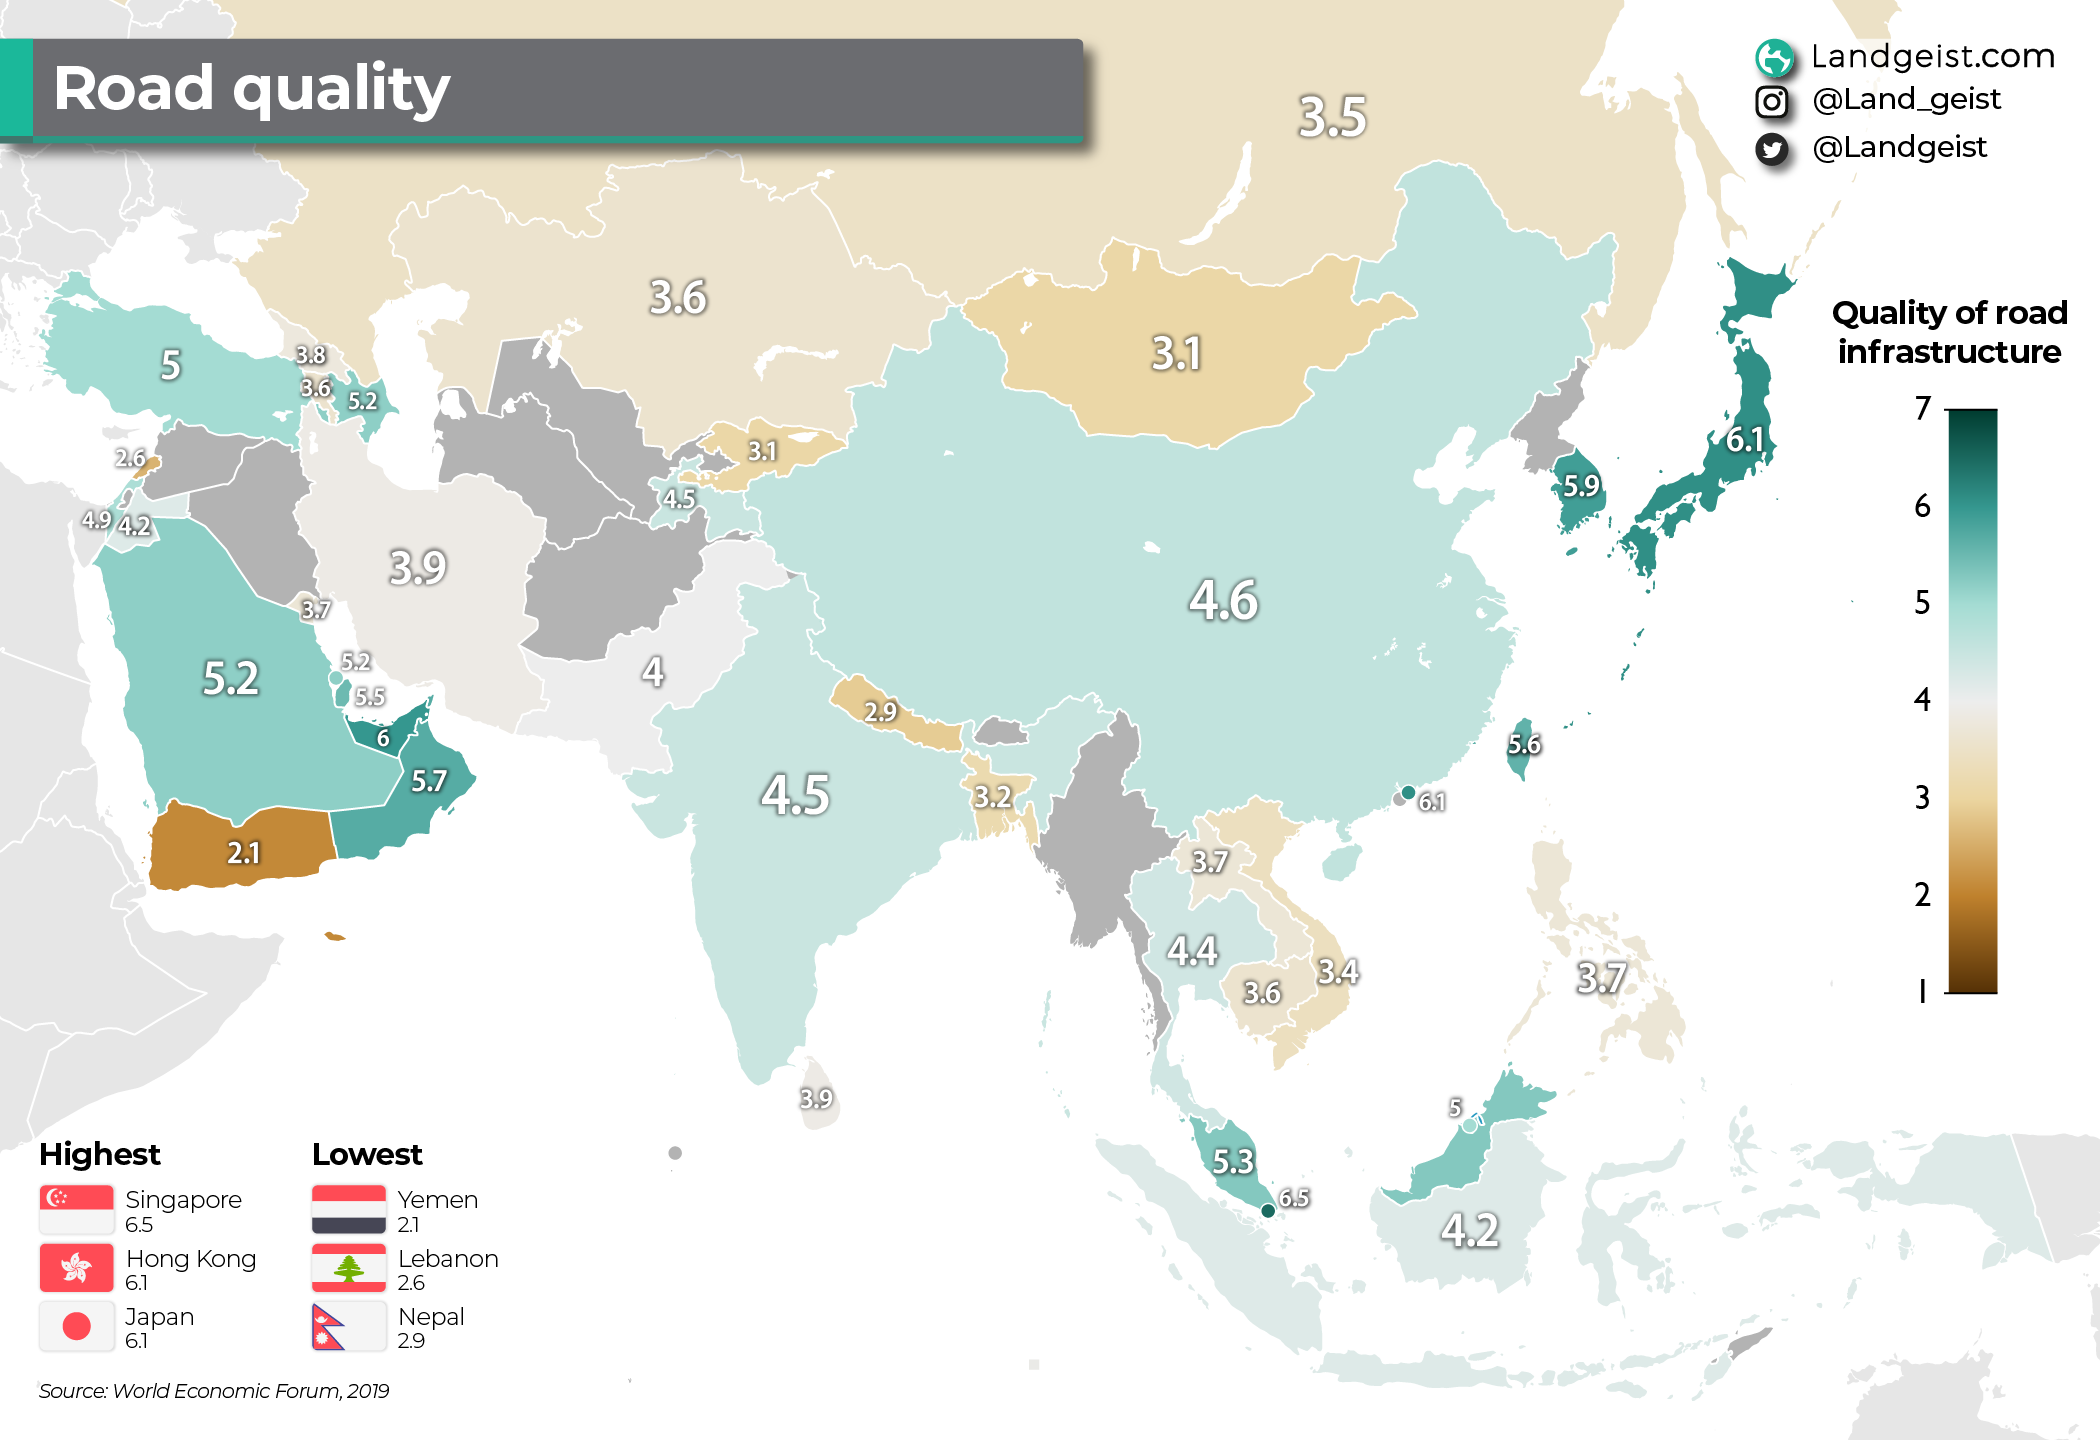 Map of the road quality in Asia